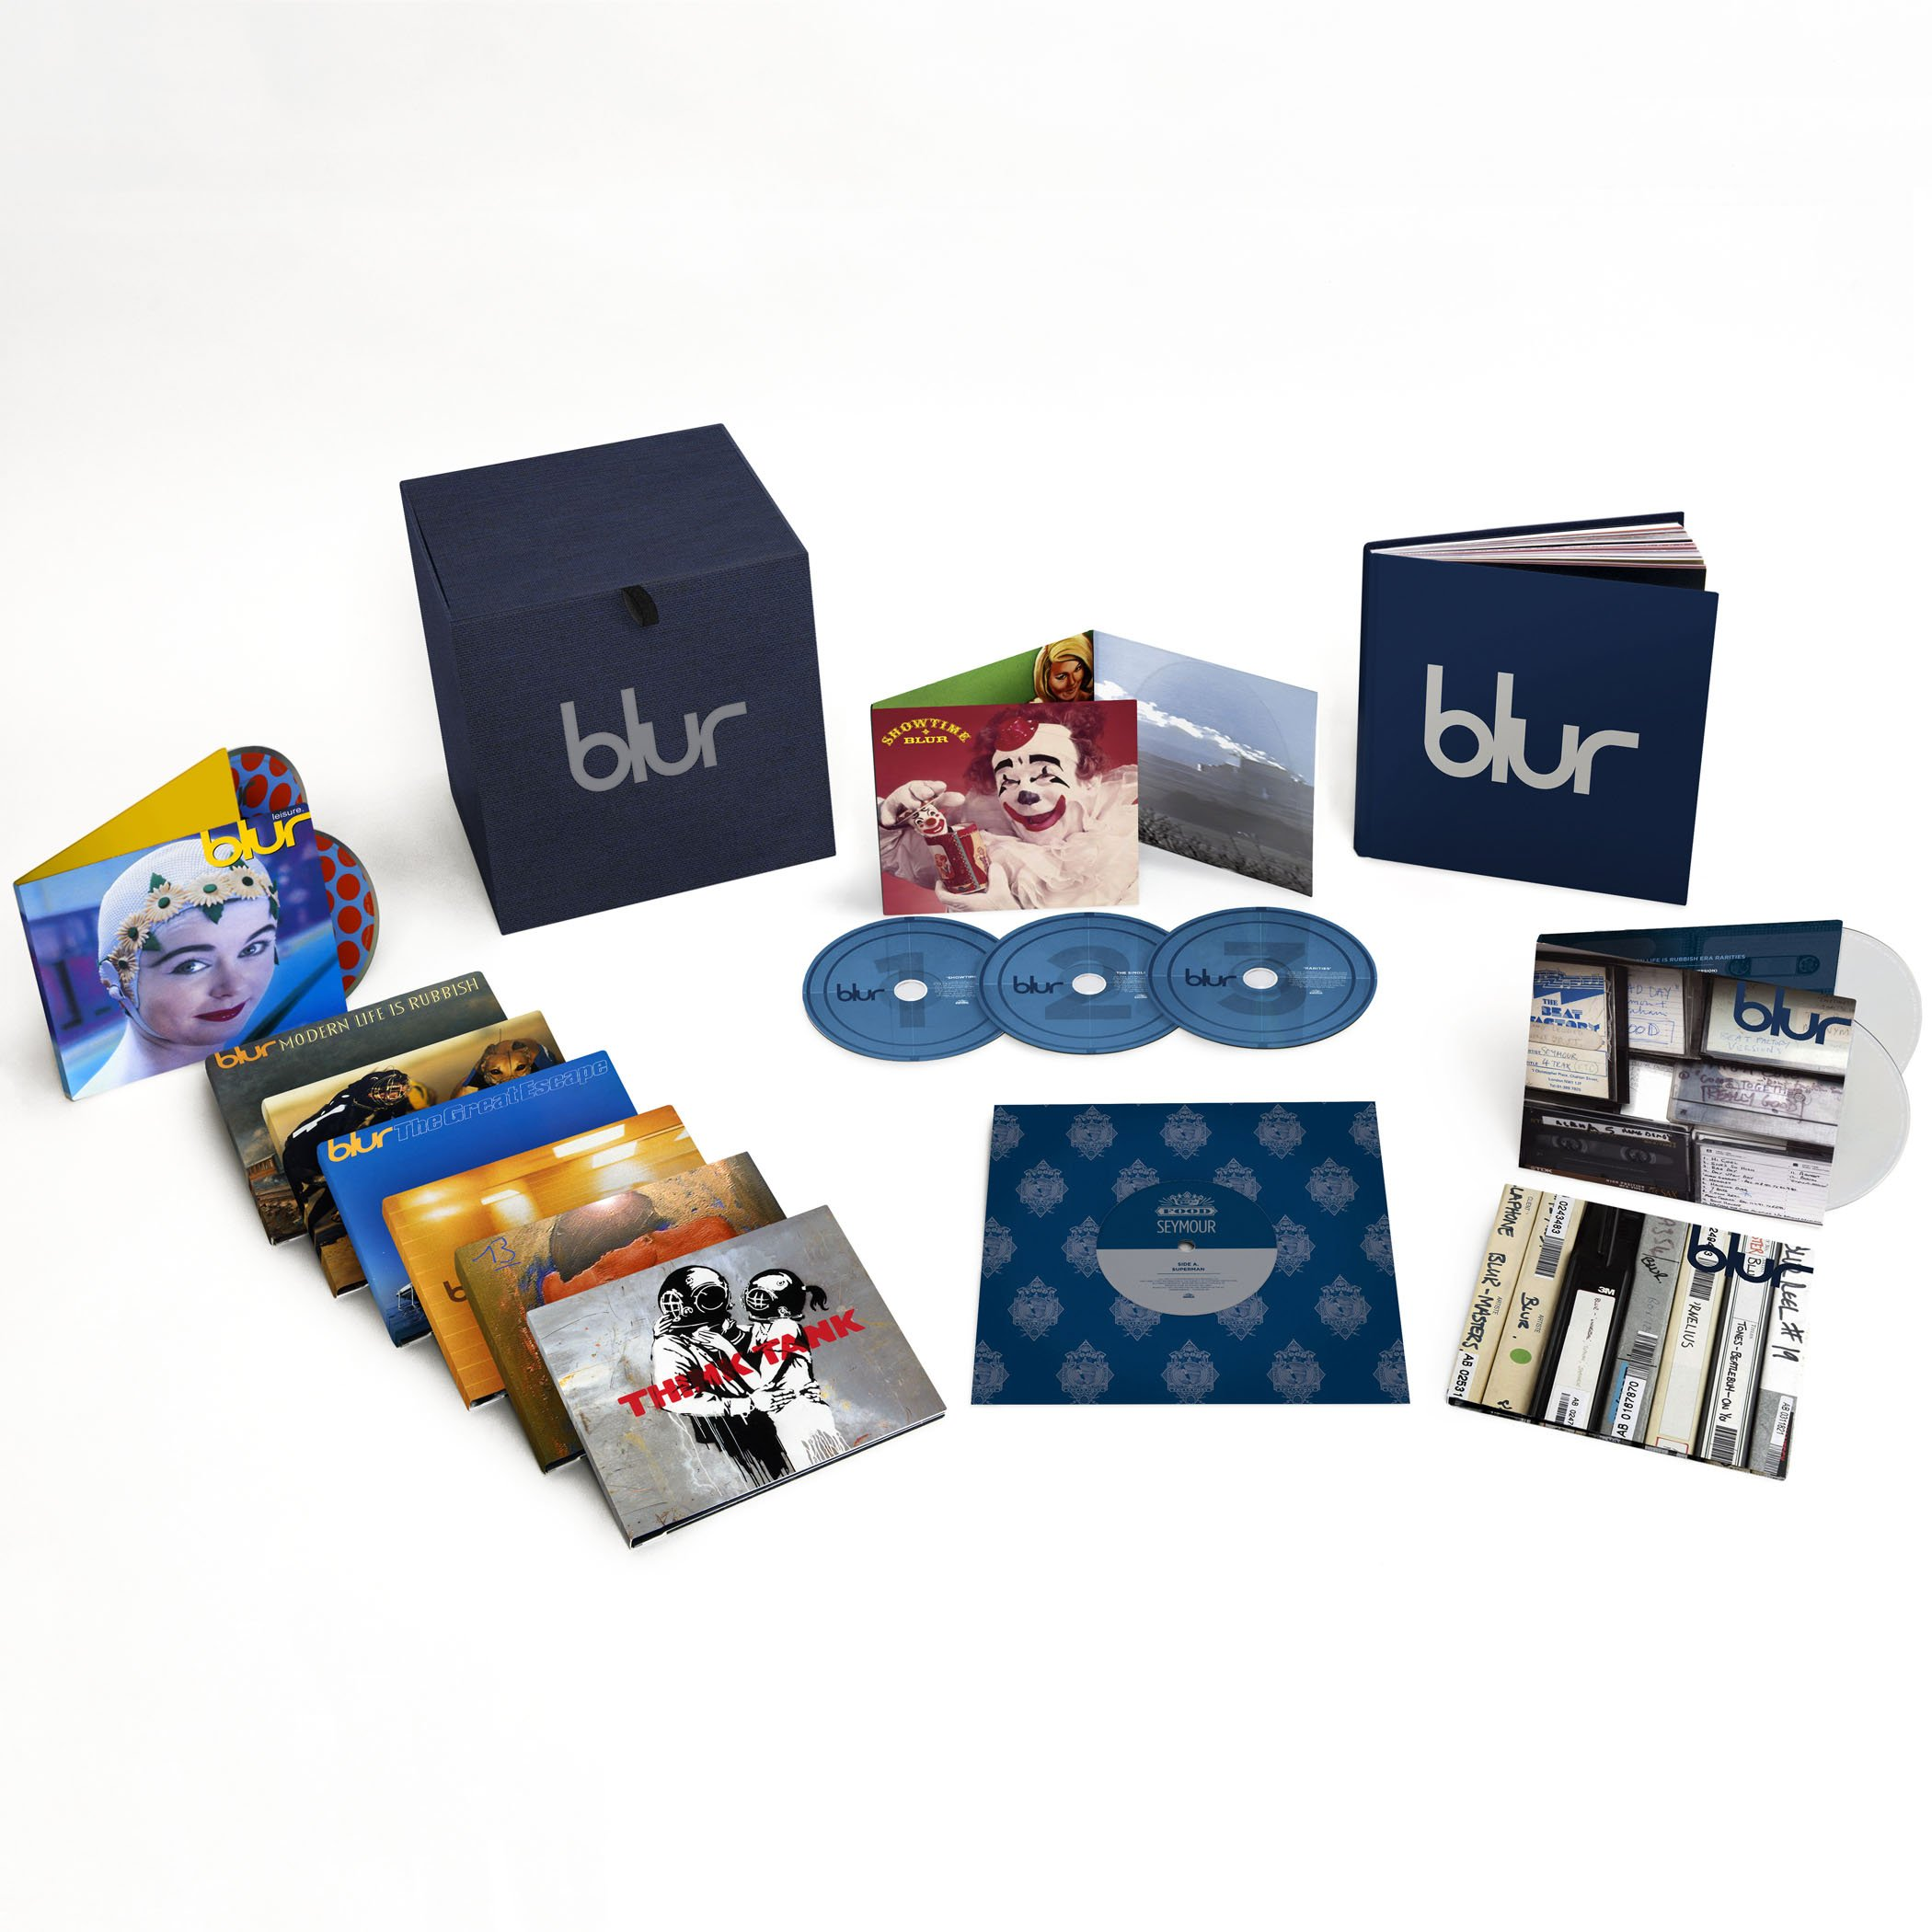 Blur 21 by Virgin Records